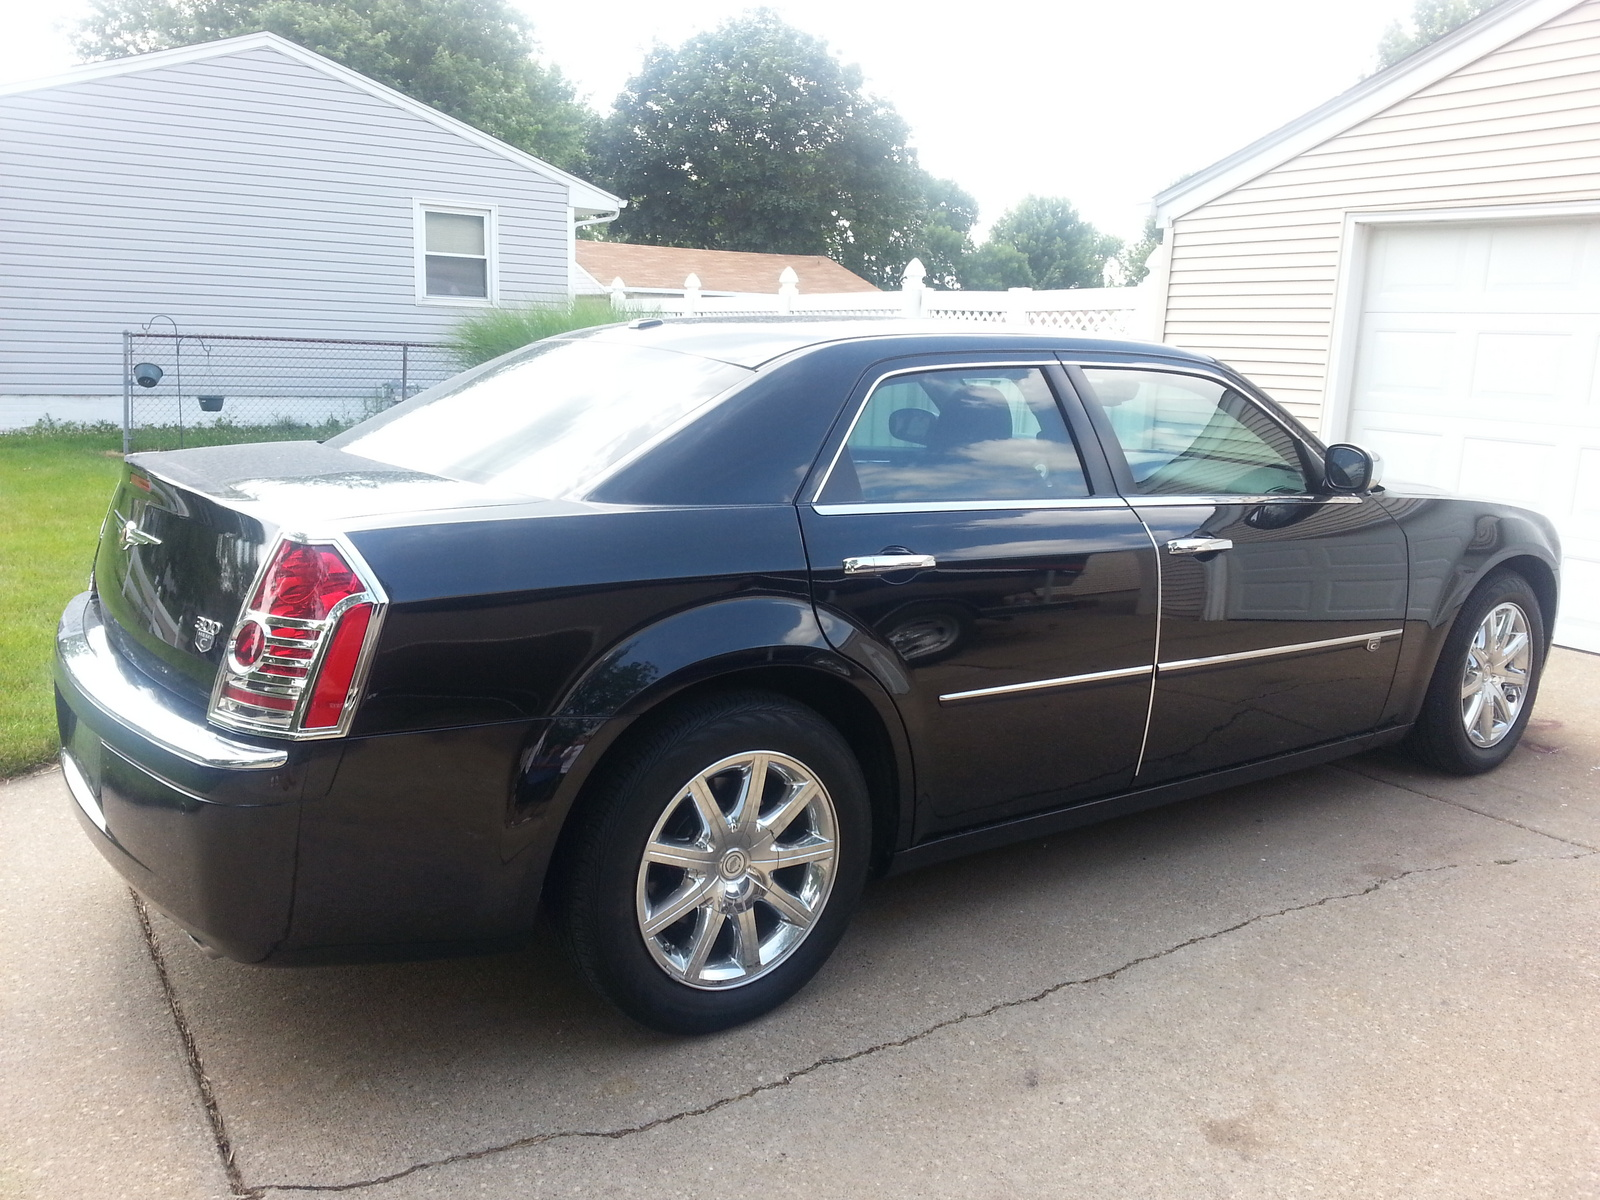 2009 chrysler 300 exterior pictures cargurus. Black Bedroom Furniture Sets. Home Design Ideas